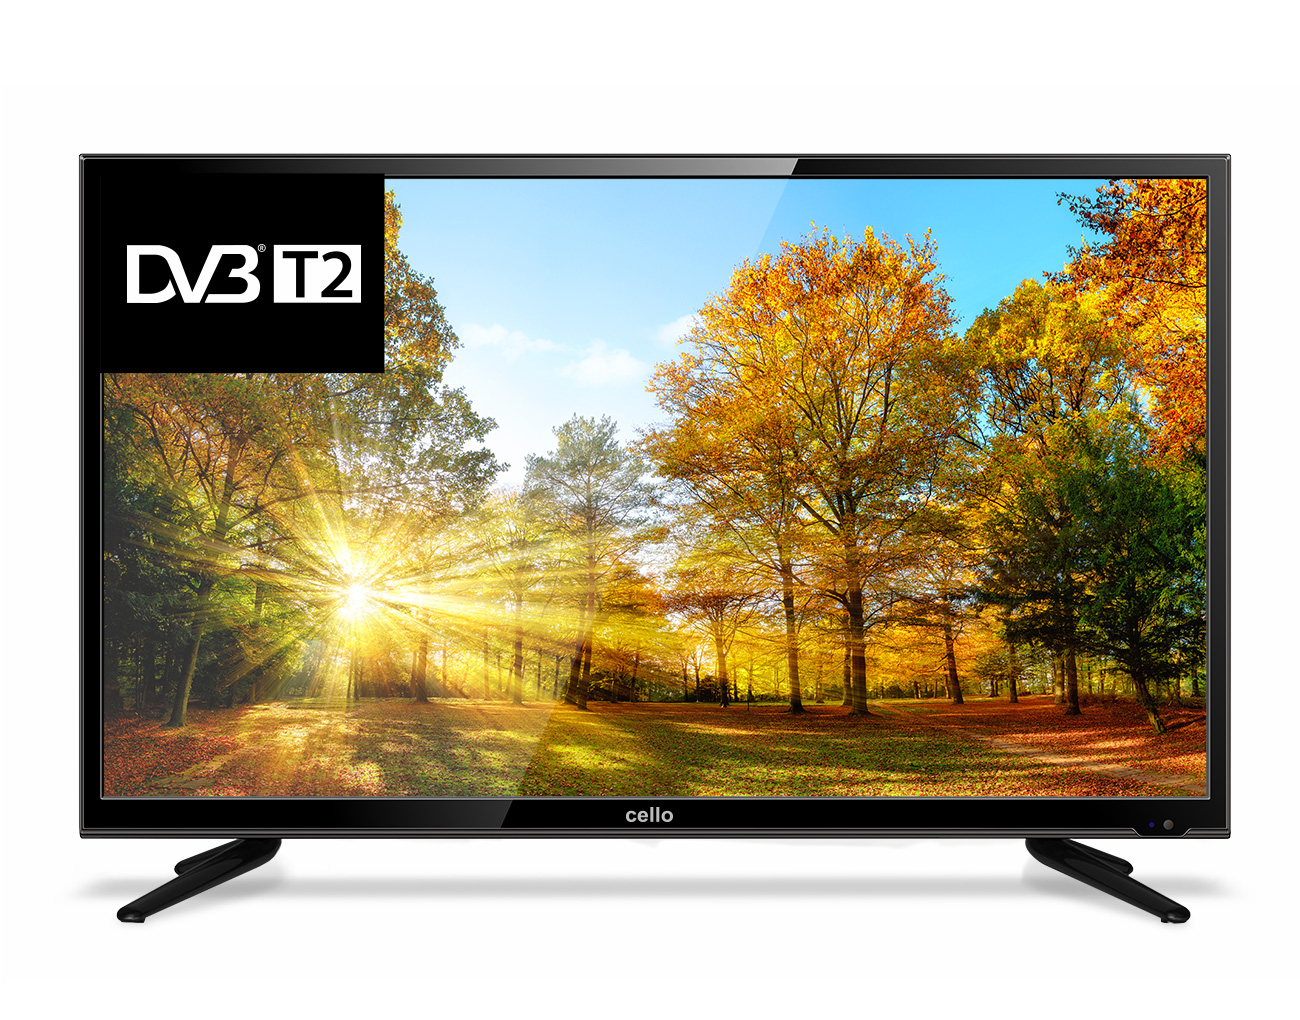 """185c29b5d4d2e 32"""" Curved LED Digital TV with Freeview T2 HD - Cello Electronics ..."""